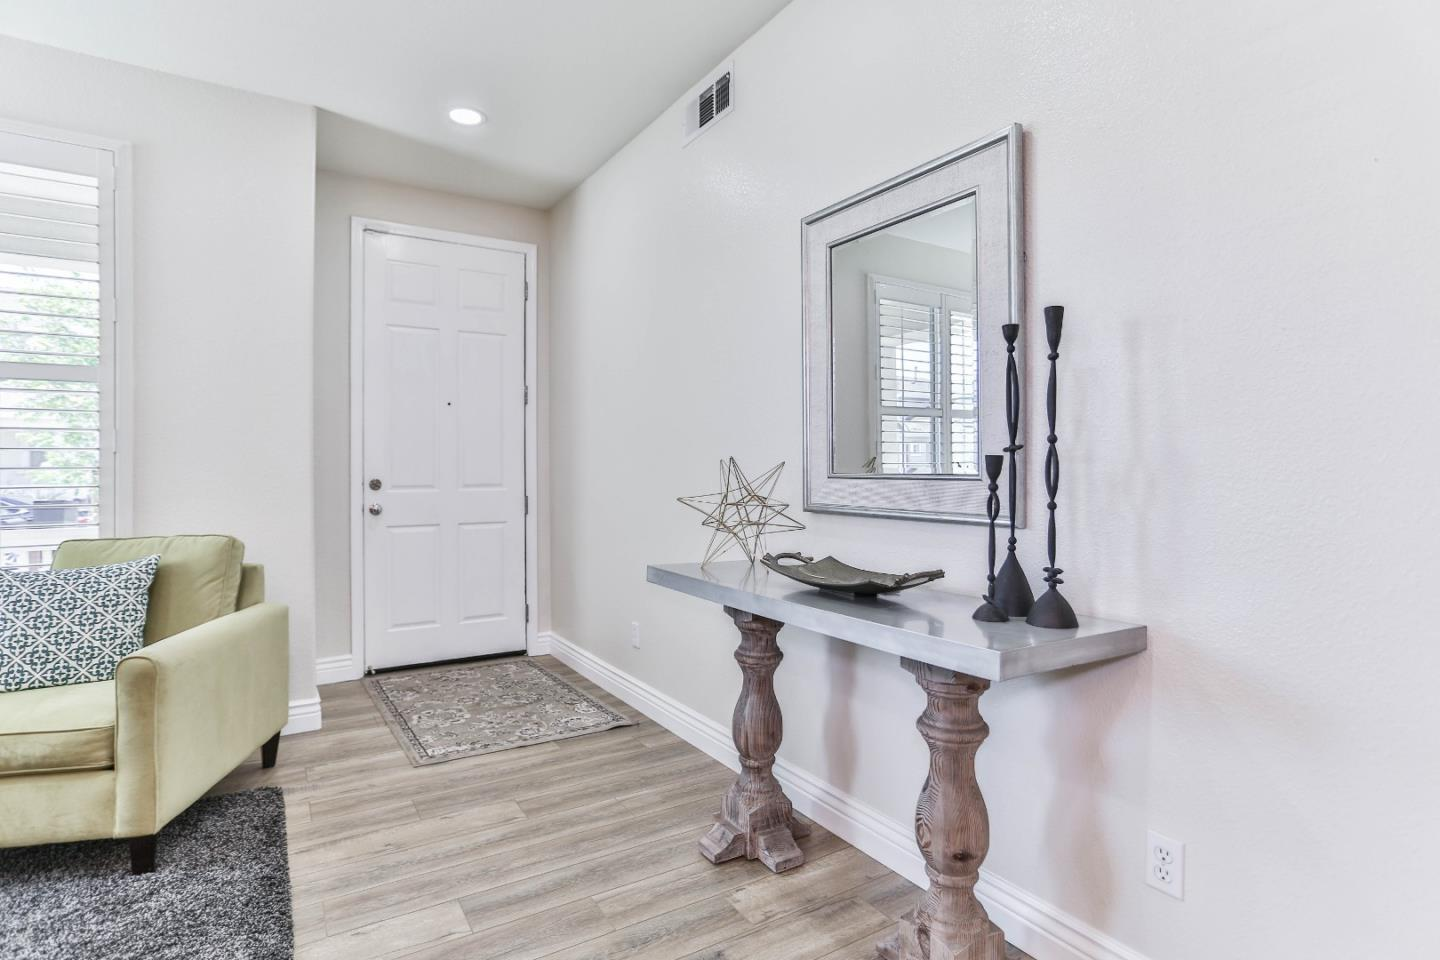 2078 Croner Place San Jose, California 95131, 3 Bedrooms Bedrooms, ,2 BathroomsBathrooms,Residential,For Sale,2078 Croner Place,ML81756157